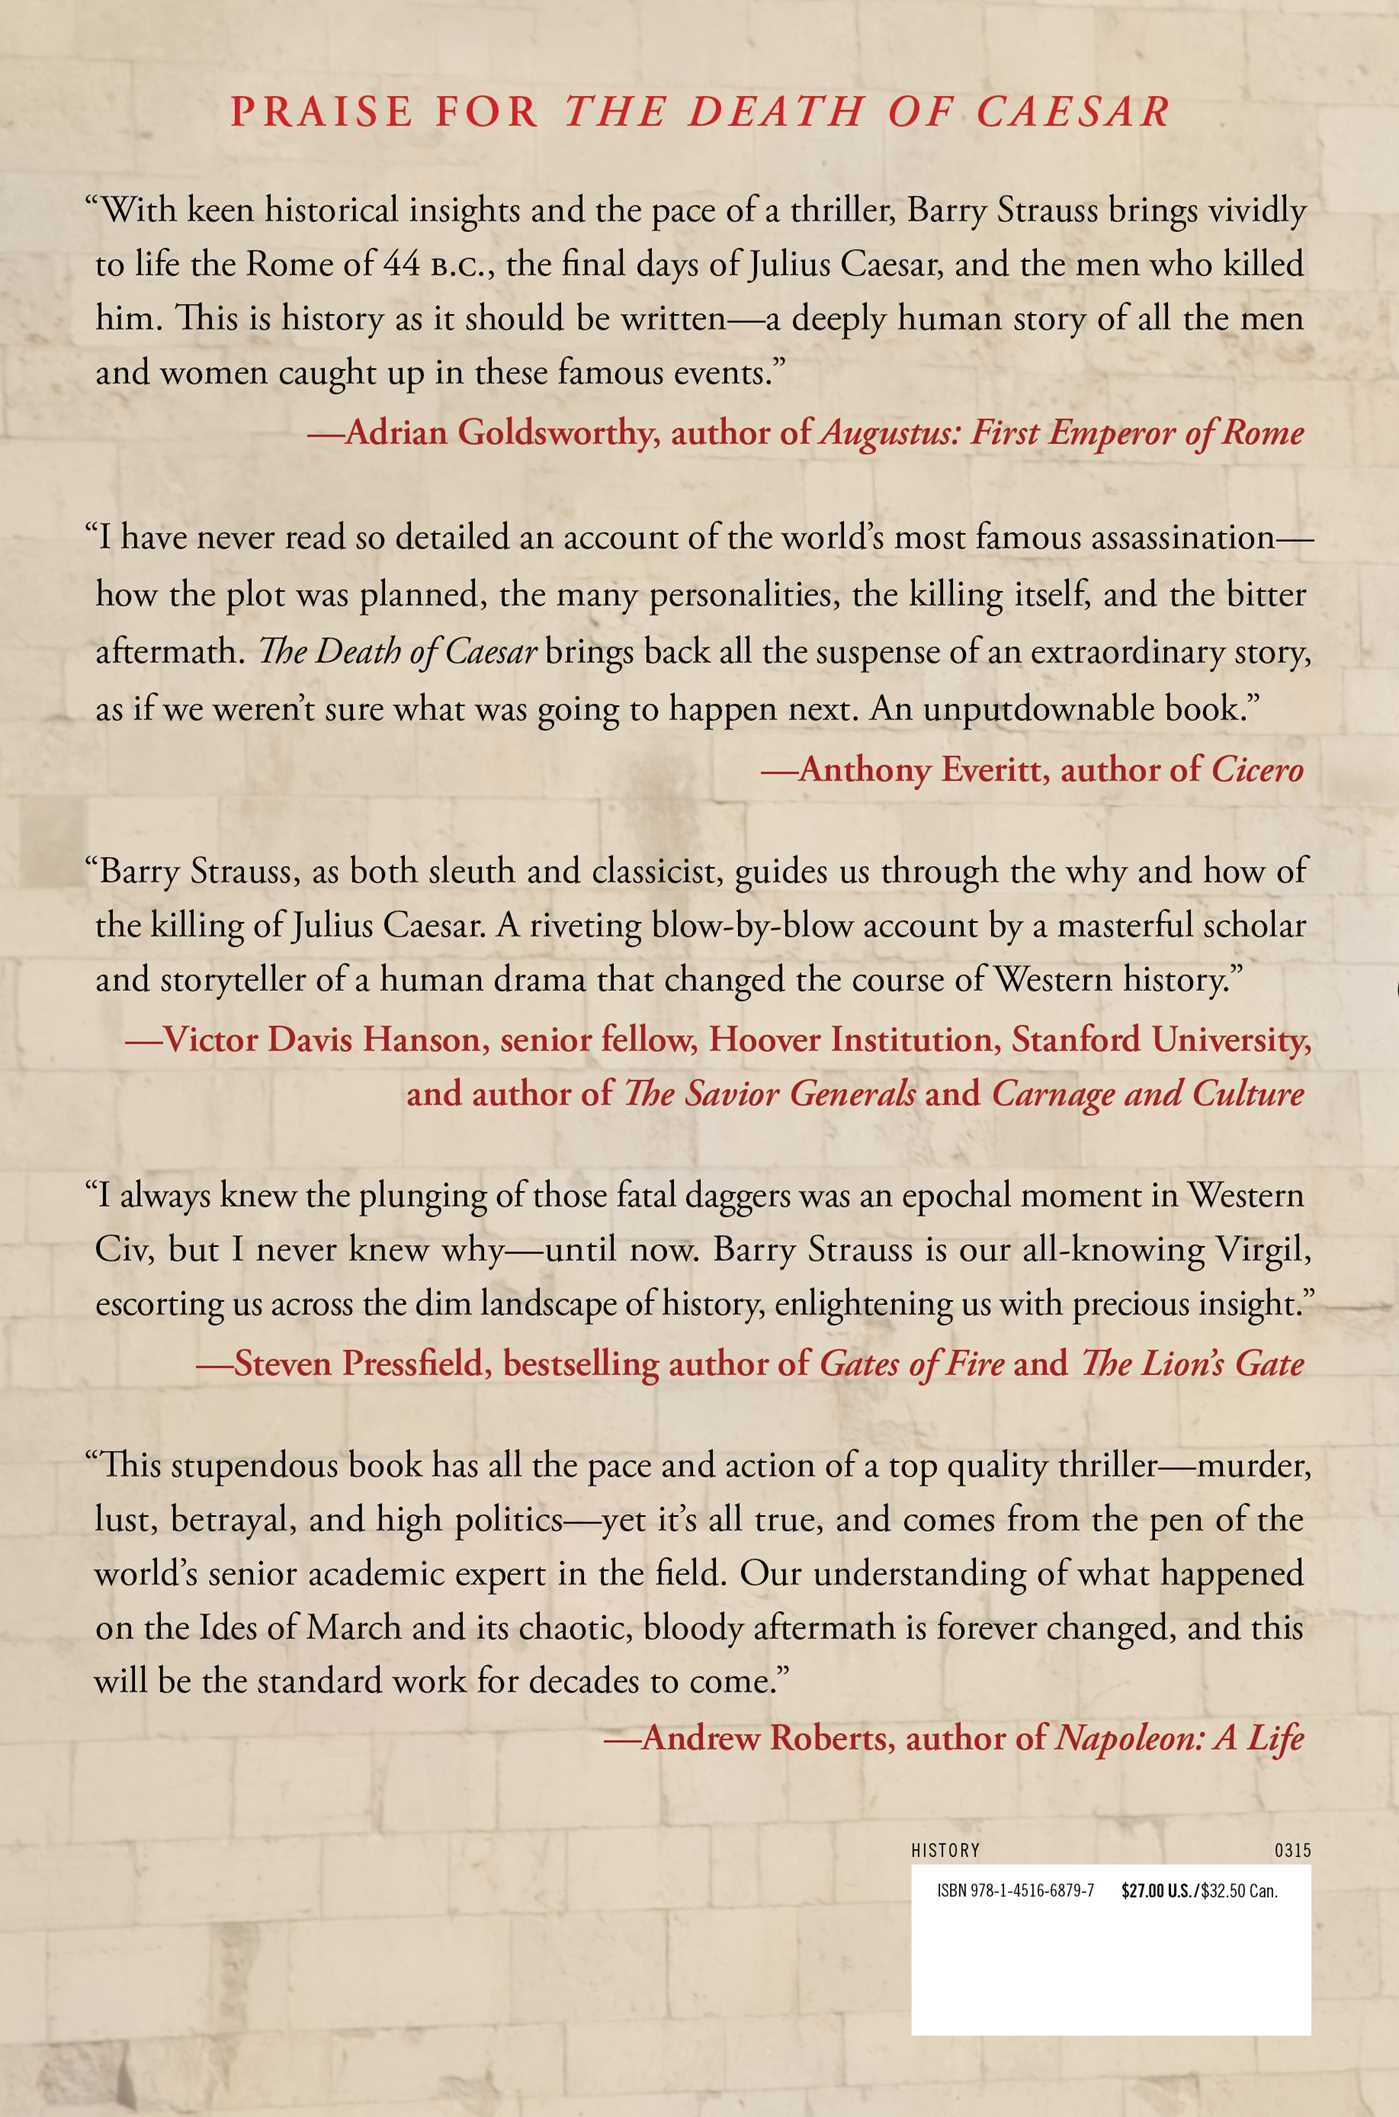 The Death of Caesar: The Story of History's Most Famous Assassination: Barry Strauss: 9781451668797: Books - Amazon.ca